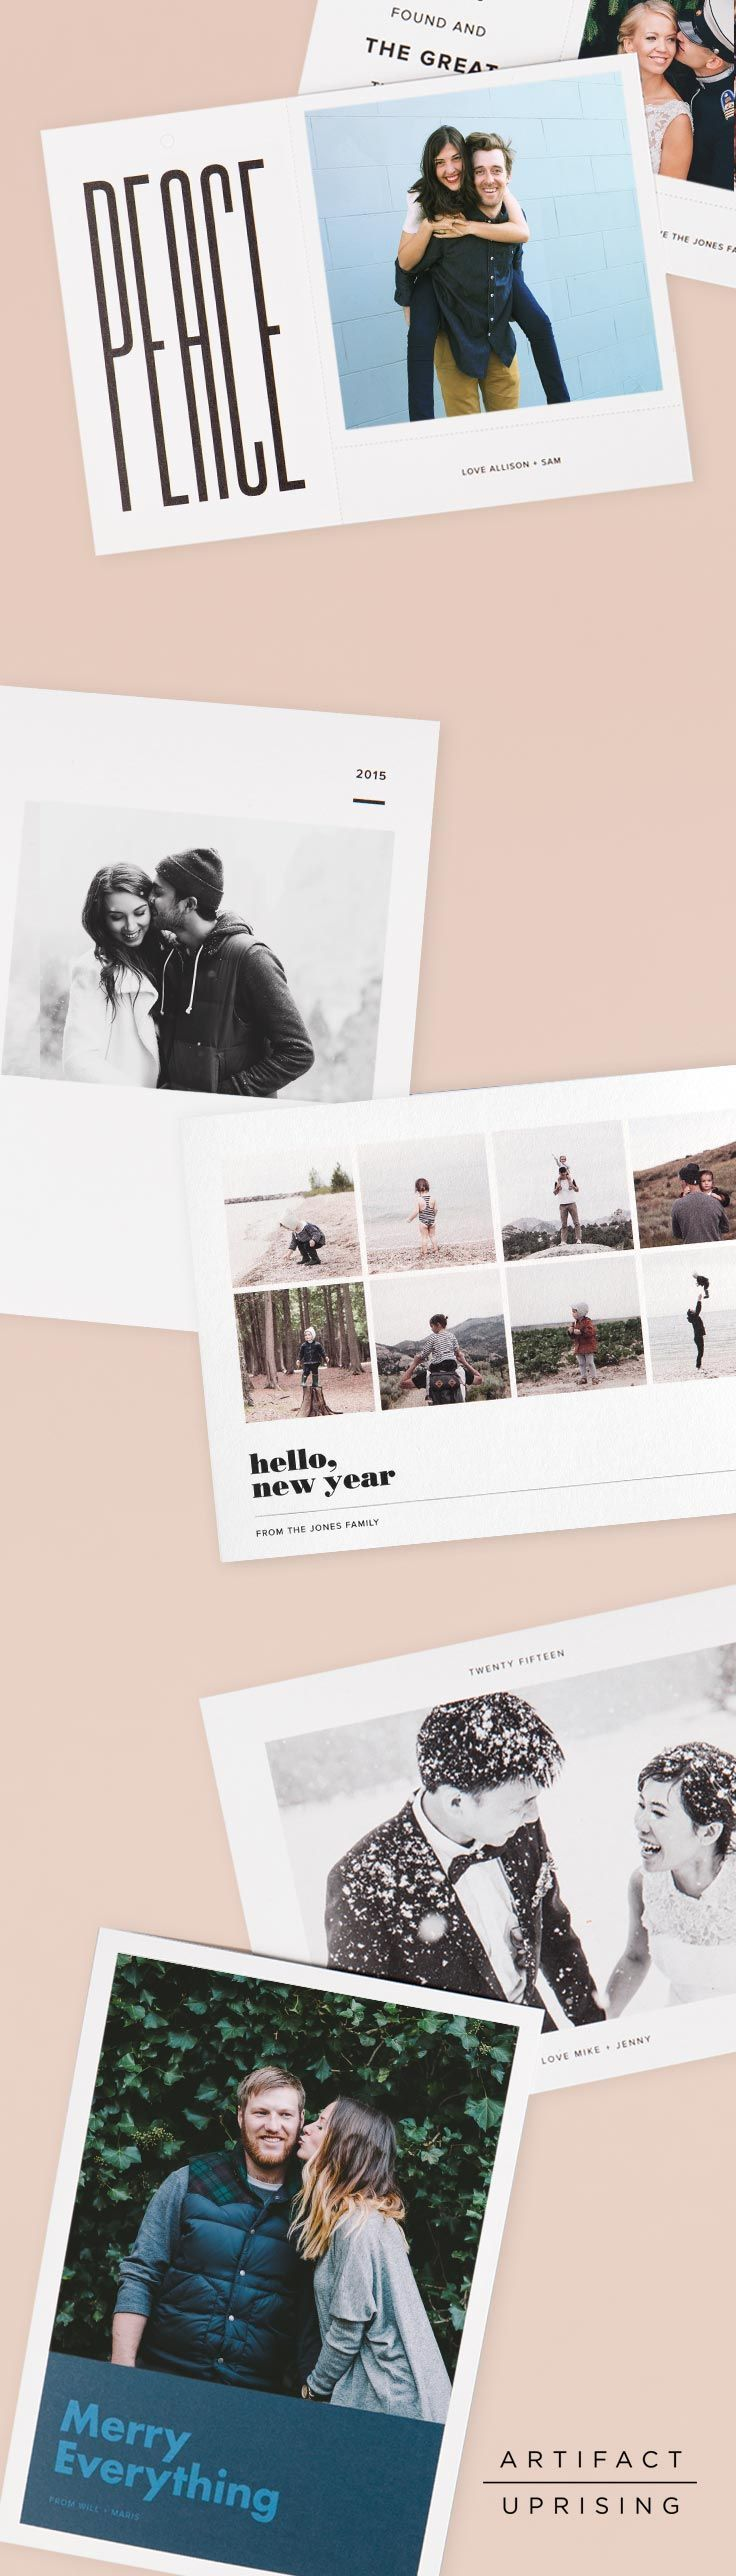 Holiday cards so good, even your neighbor will want one. The 2015 holiday photo card collection from @artifactuprsng offers exceptional holiday designs that can be customized with your favorite photo and personalized greeting. Create your cards in our online editor or straight from your iPhone, and have them delivered to your door in no time. Each holiday card is printed on 100% recycled paper and includes a kraft envelope.: